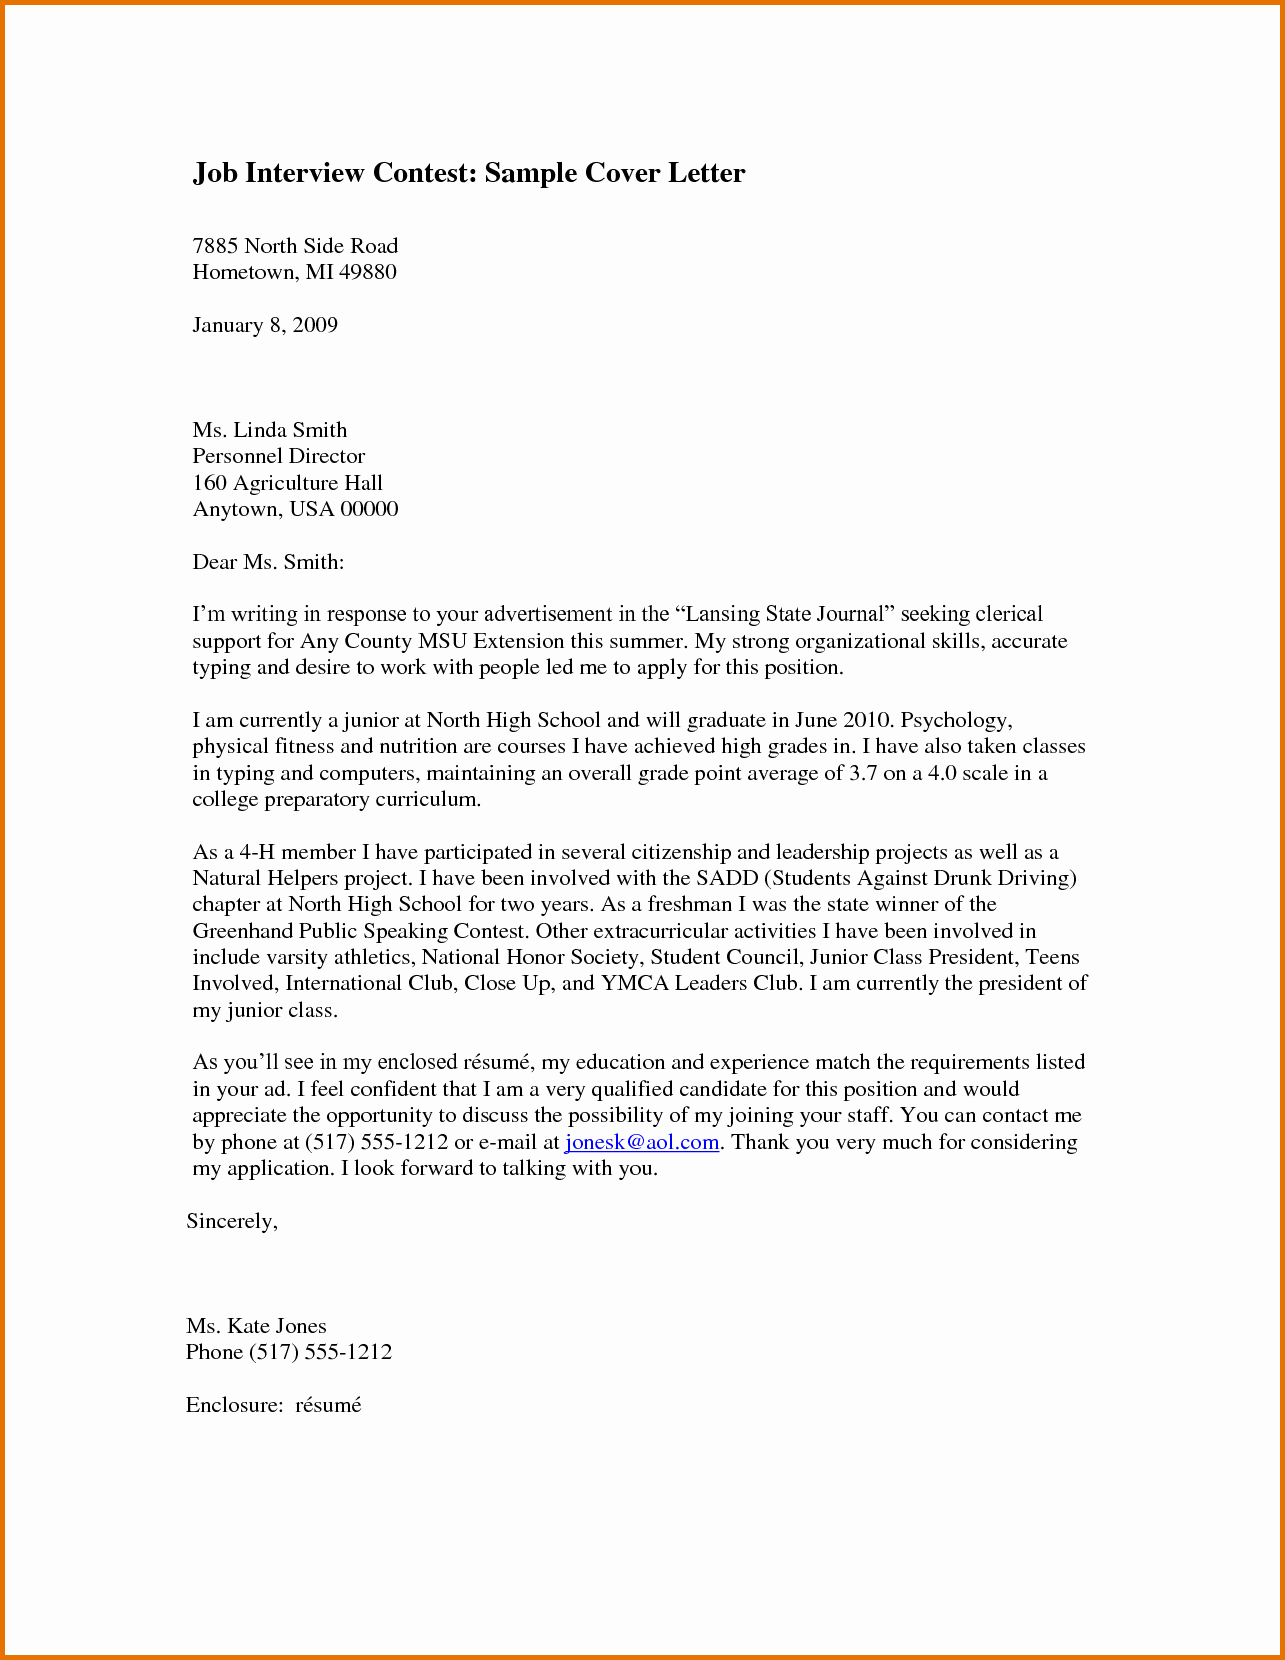 Job Interview Cover Letterreference Letters Words